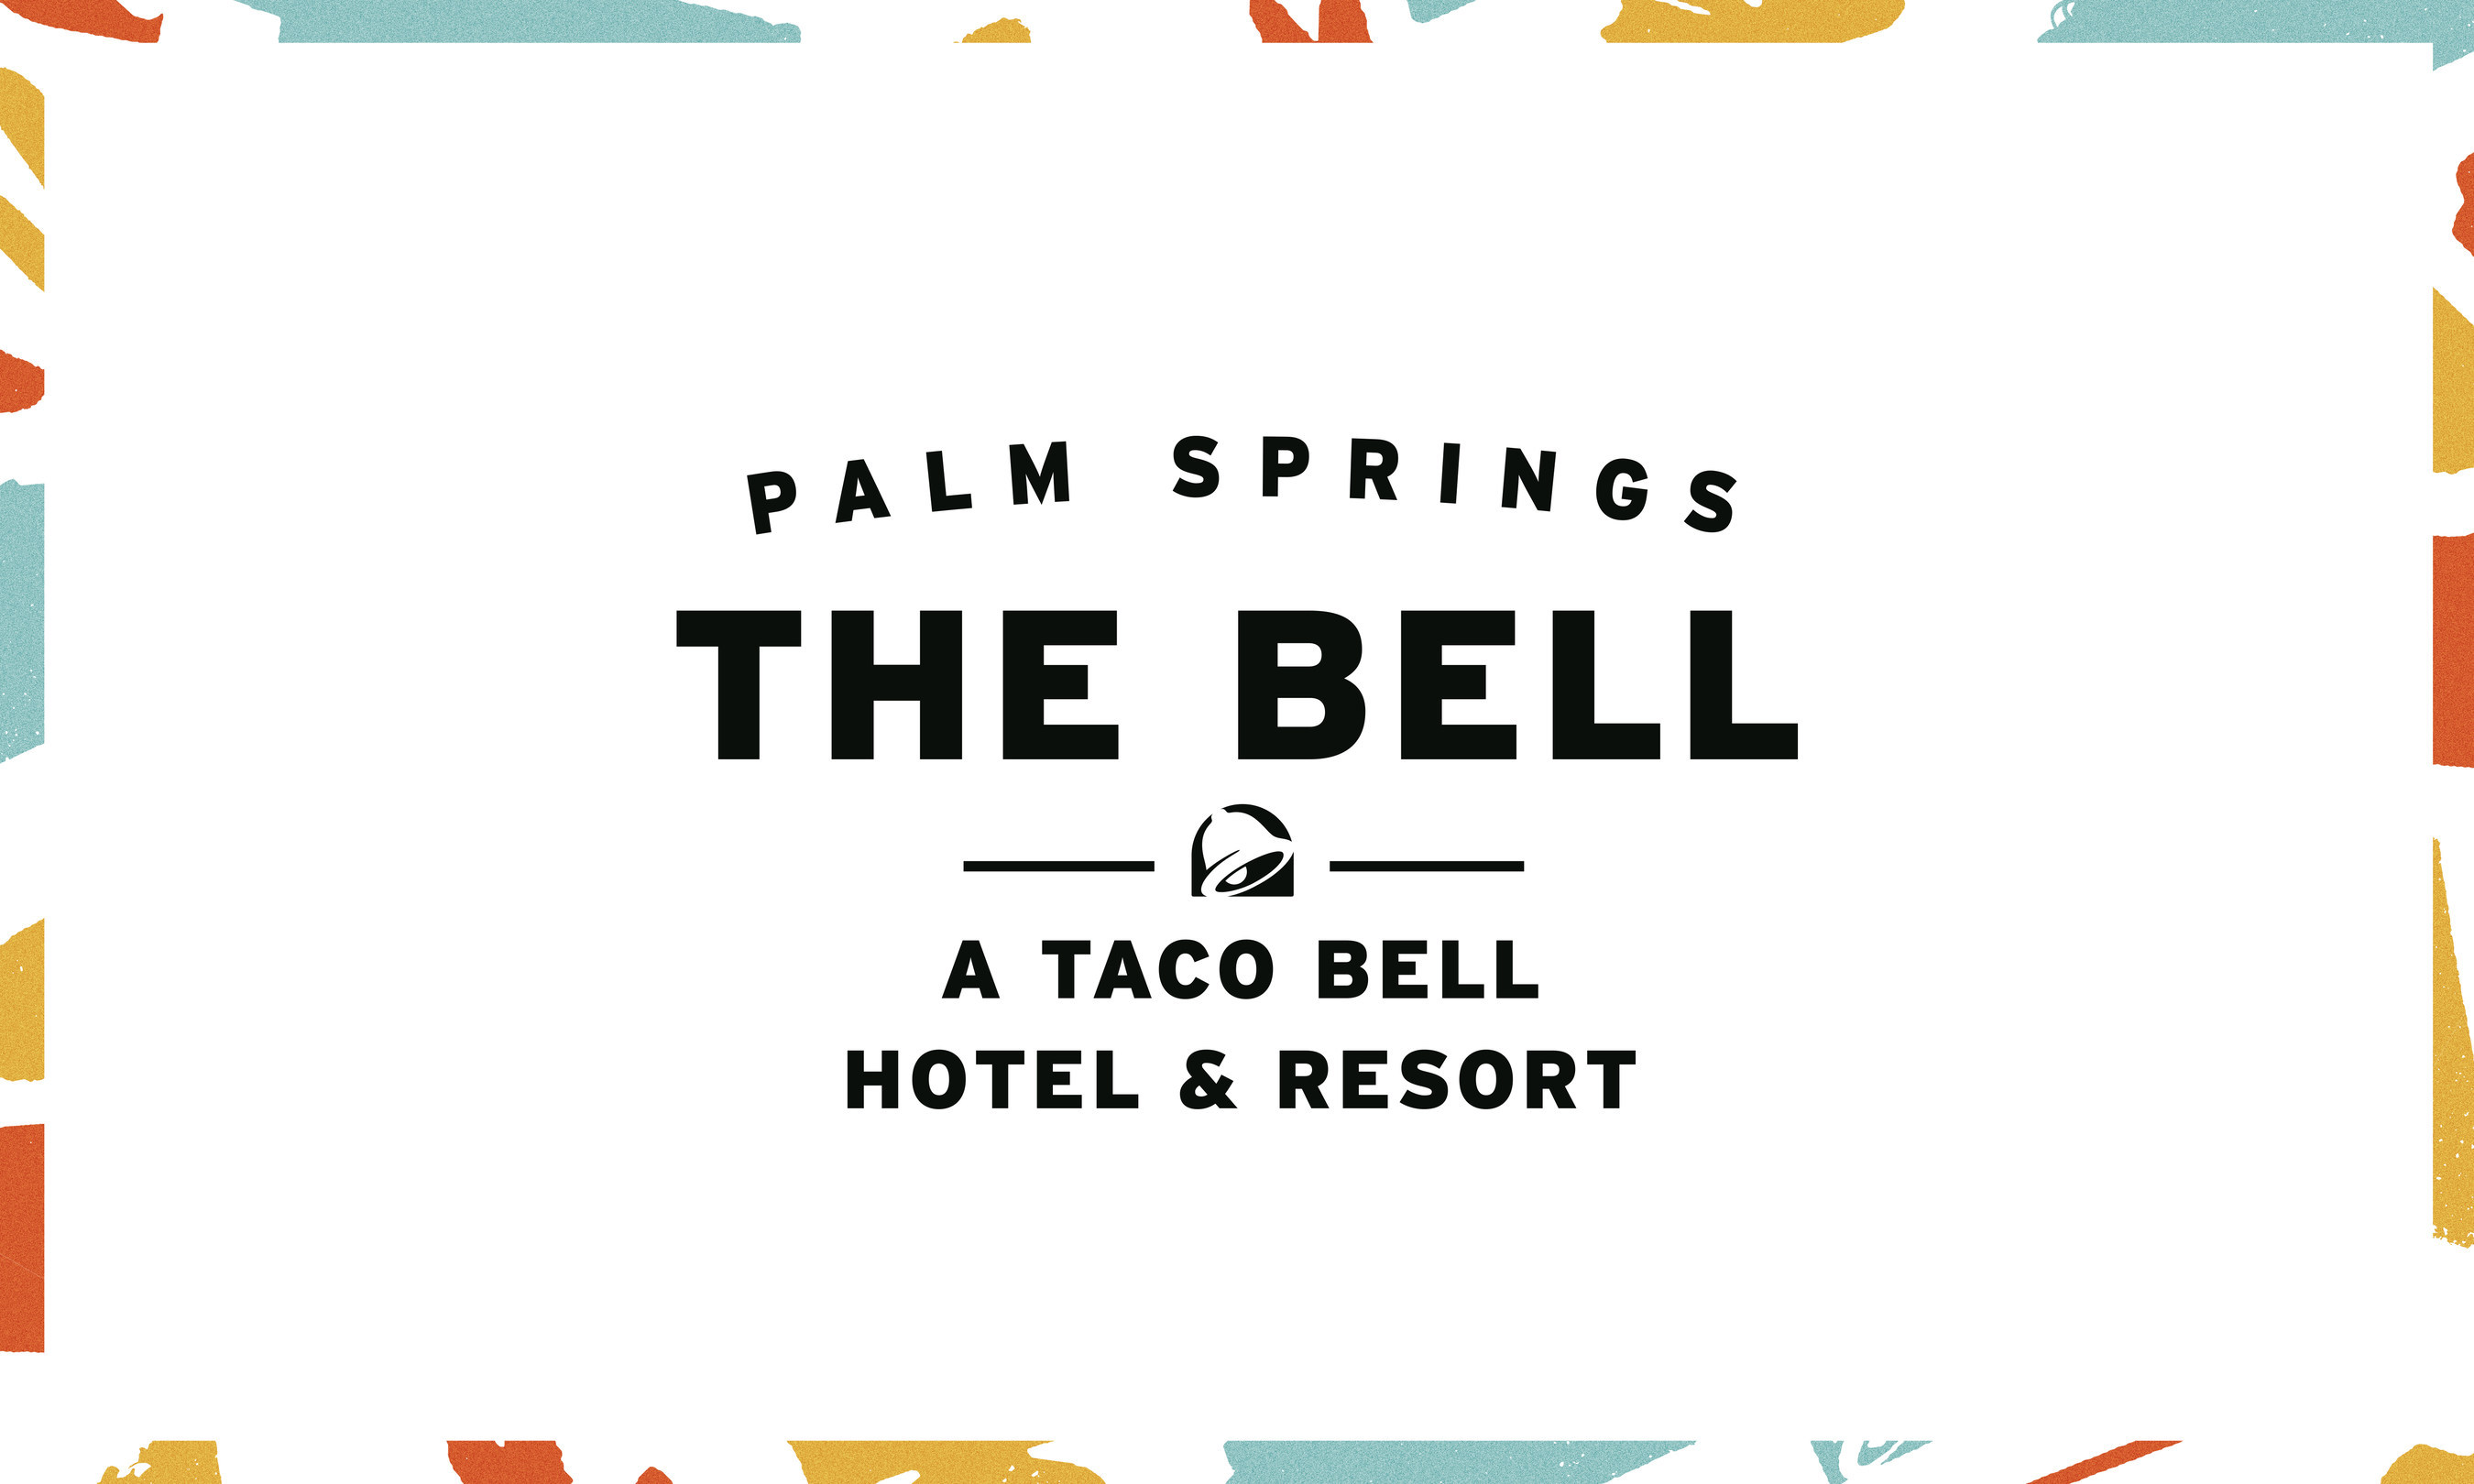 Taco Bell Hotel Launching August 2019 - Adding A Spicy Twist